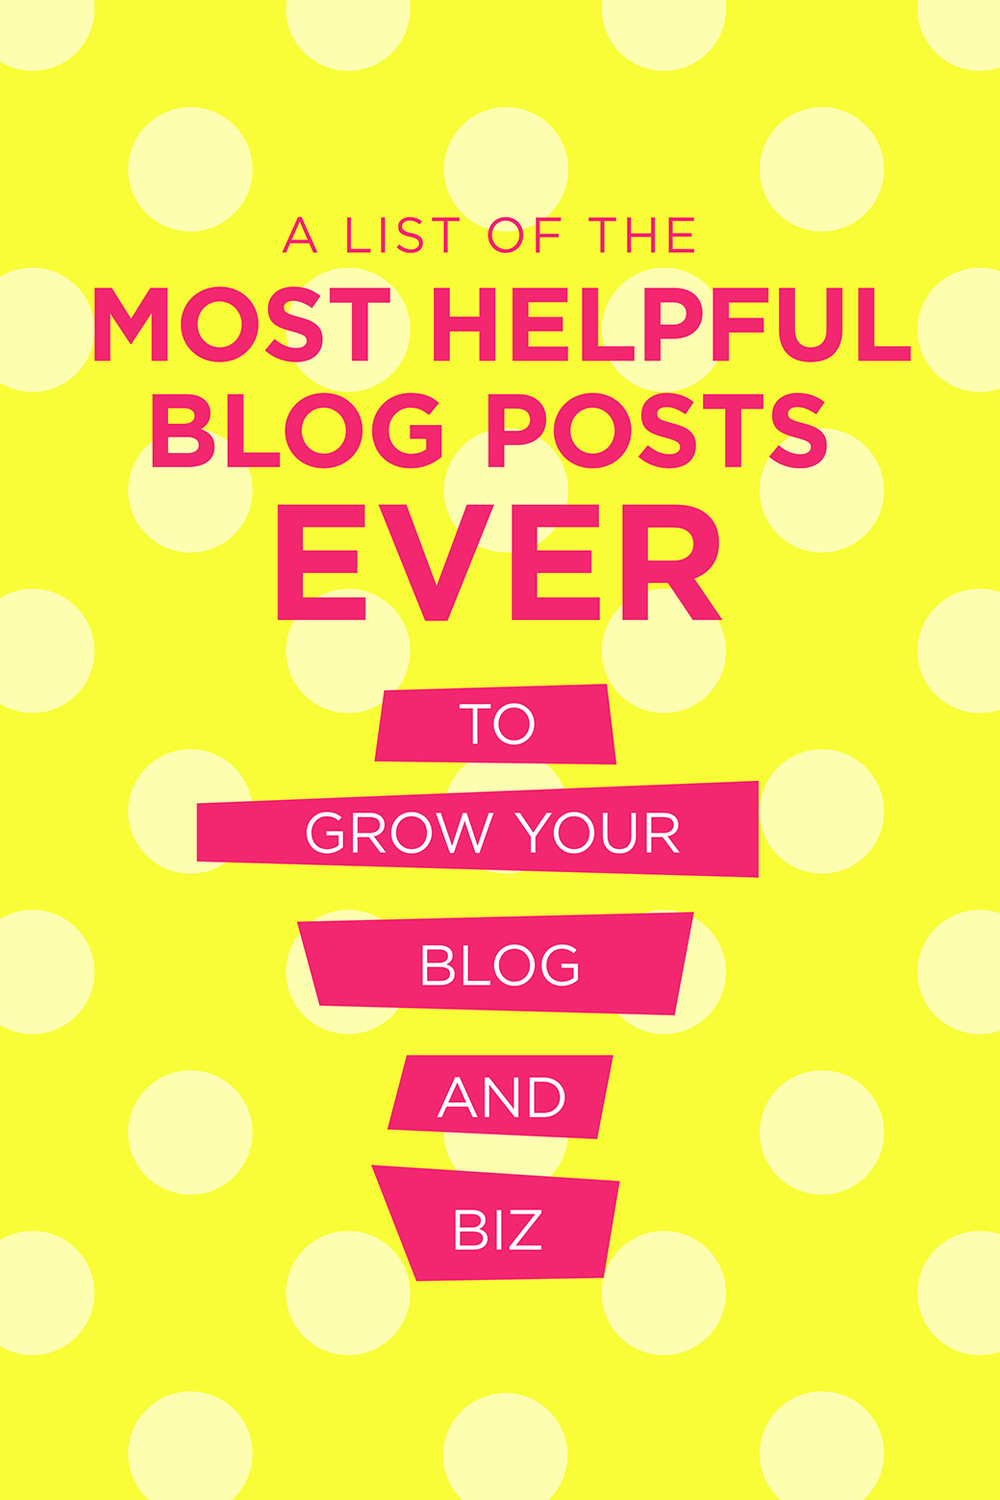 A list of the most helpful and quality blog posts ever to help you grow your blog + business!